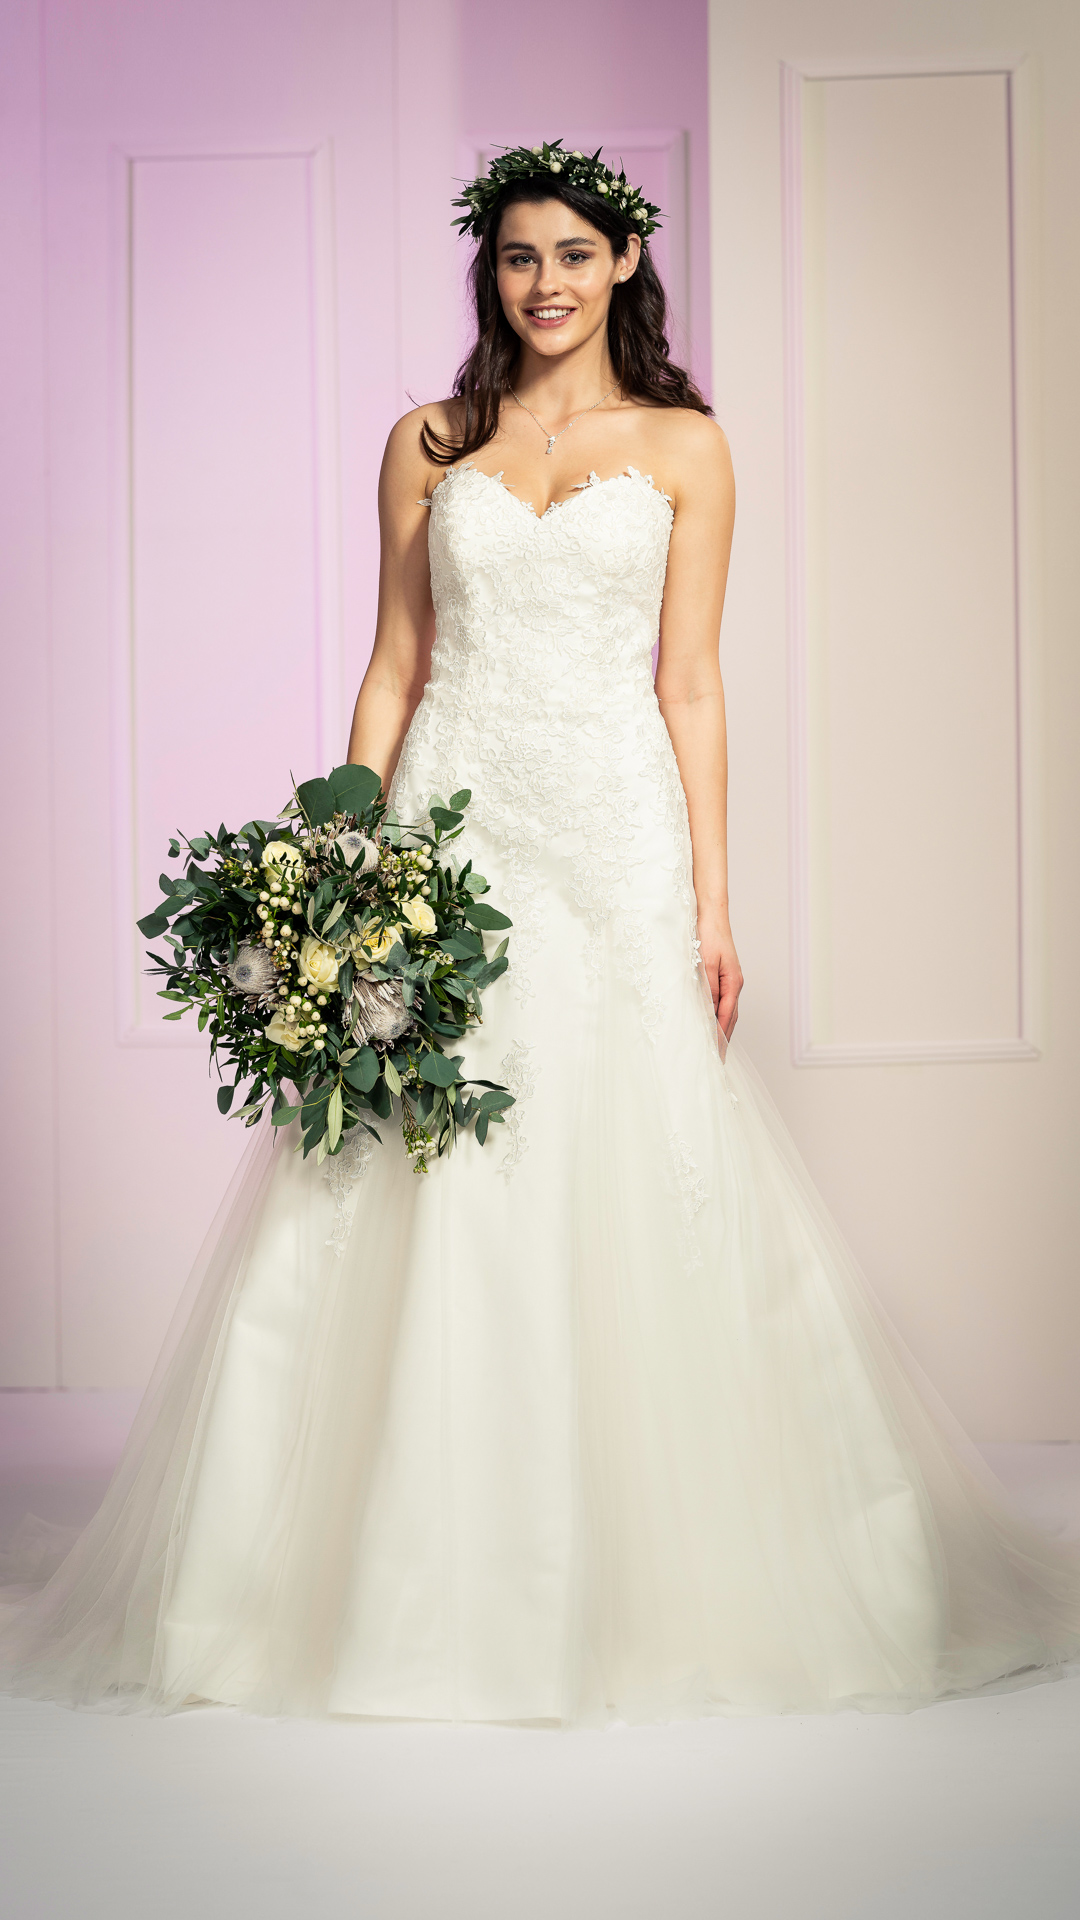 Brautkleid Dress My Yes Kollektion 2020 Modell DY1-6185